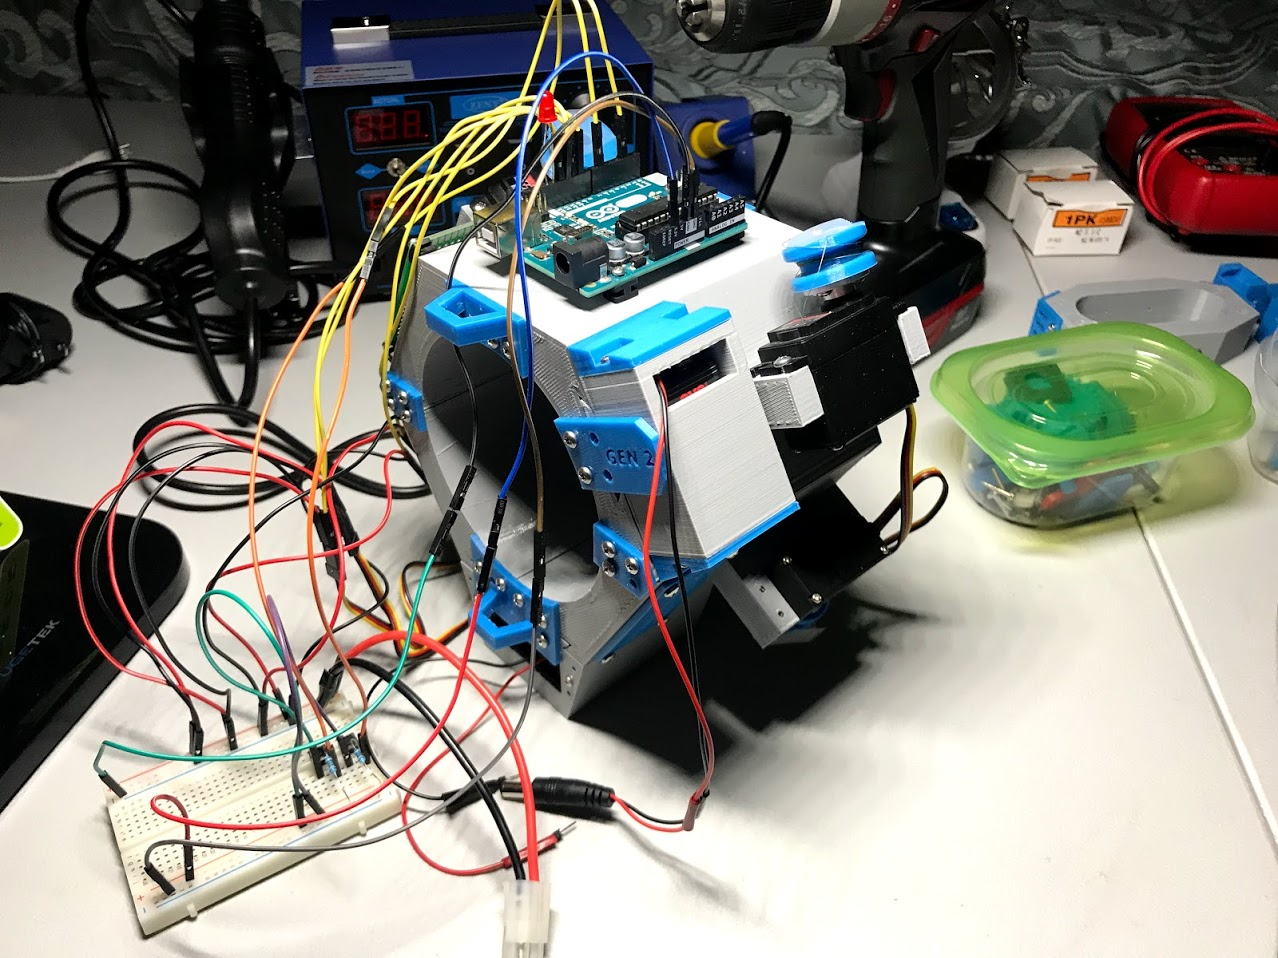 Picture of Gen 2 (Physical Therapy) Robotic Device